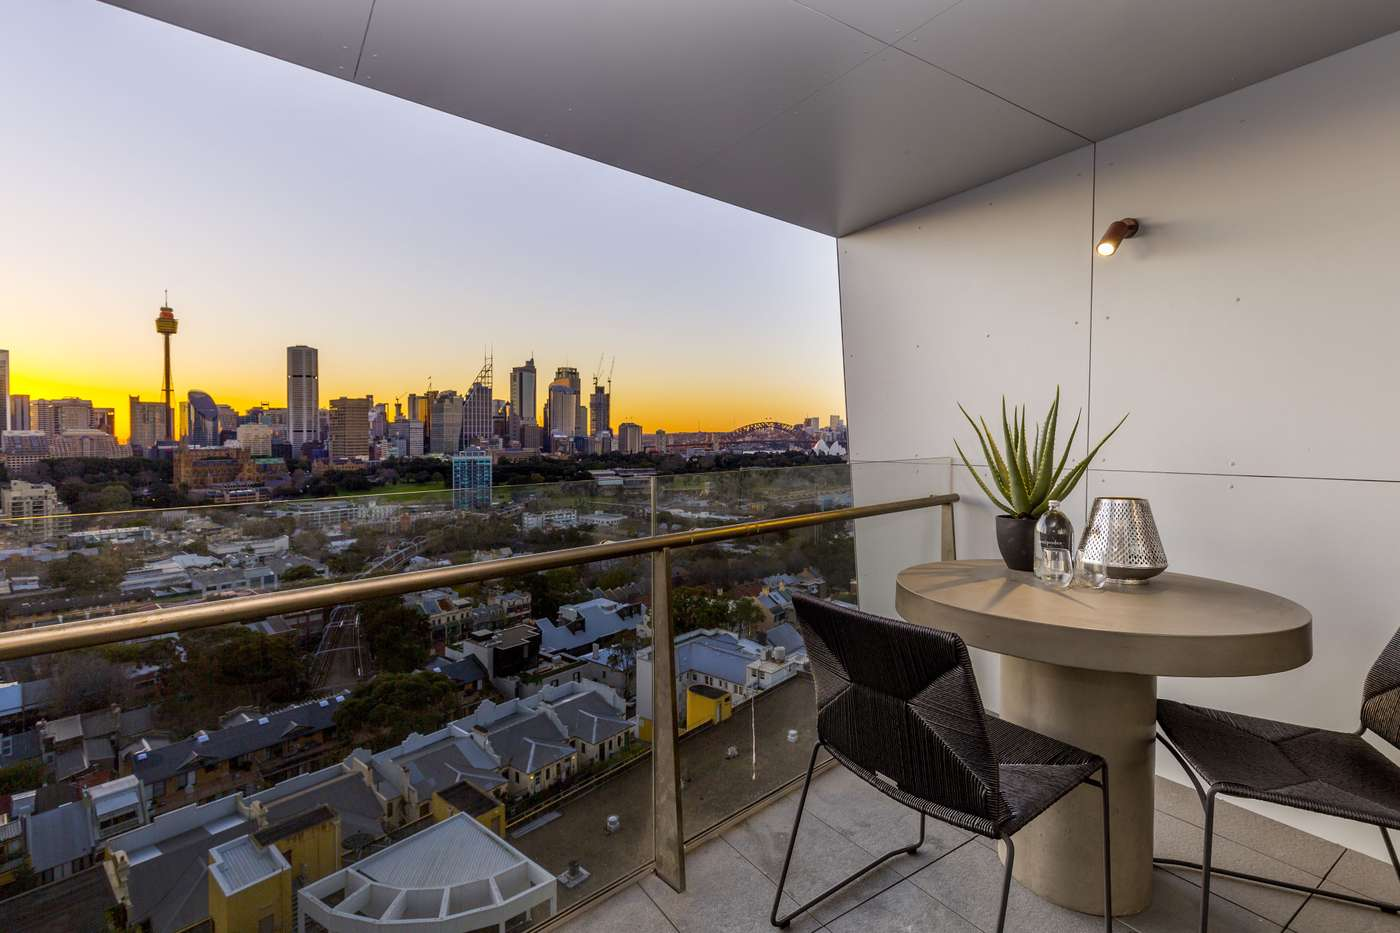 Main view of Homely apartment listing, 1513/226 Victoria Street, Potts Point, NSW 2011